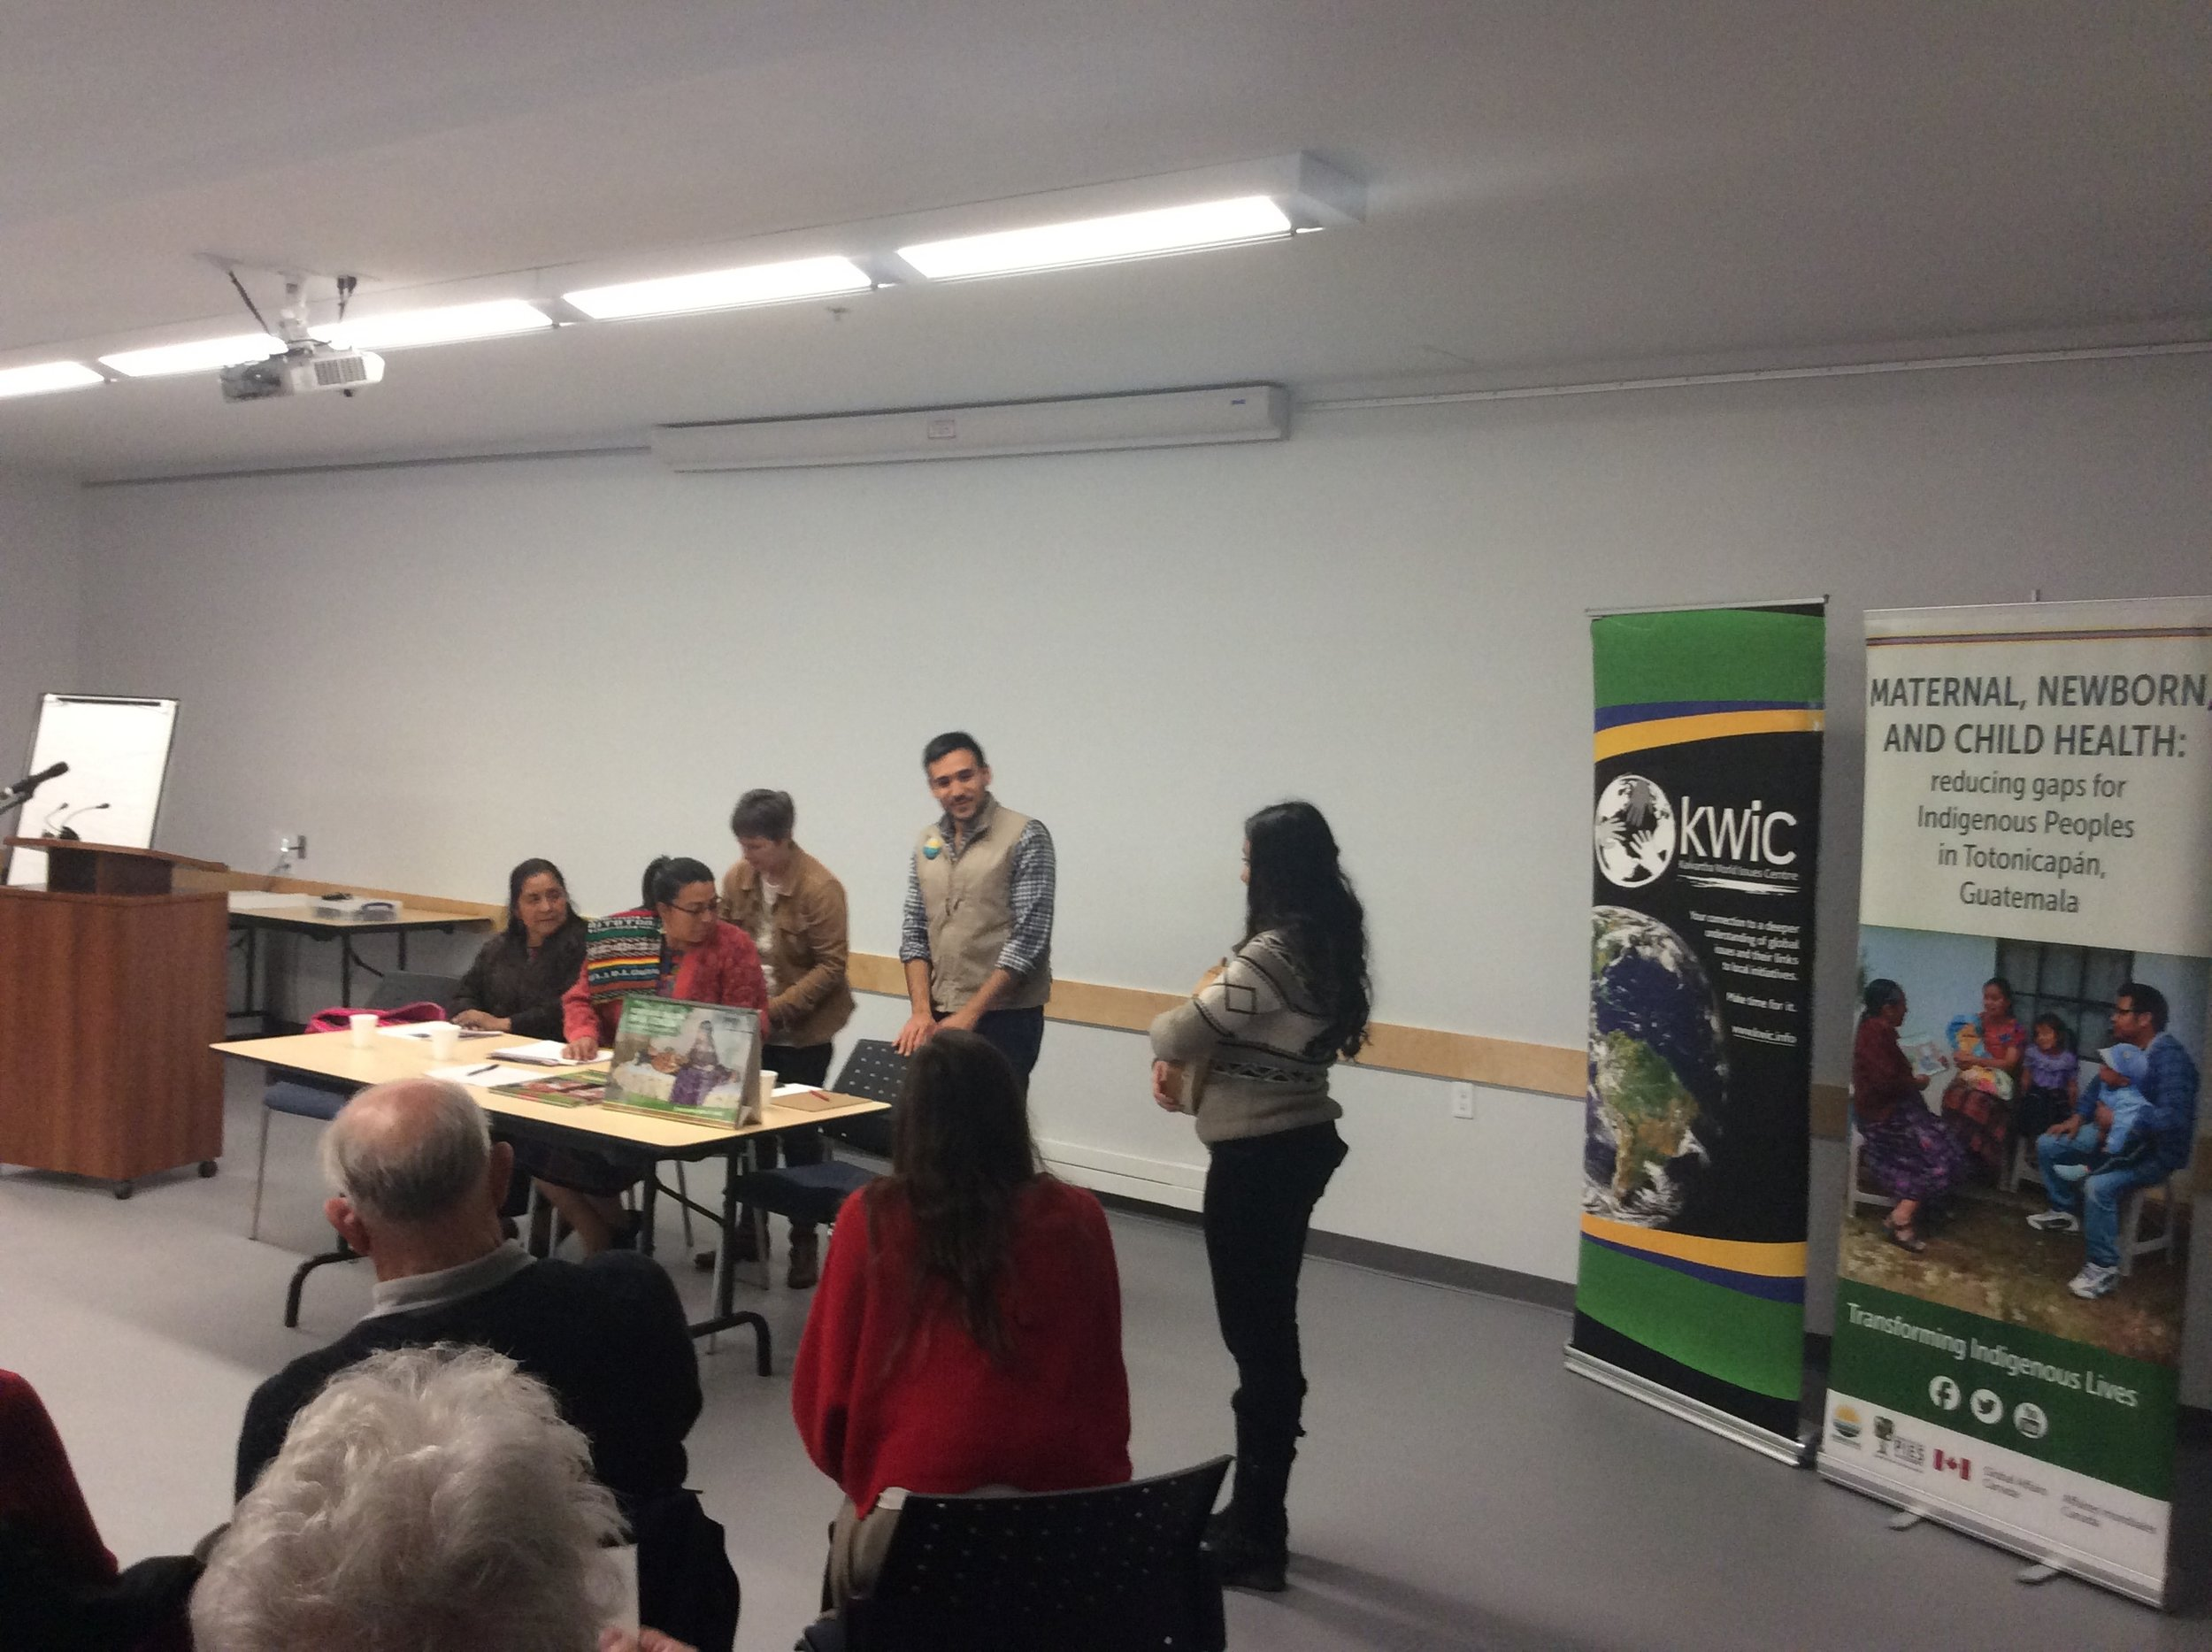 KWIC was also instrumental in involving two local Indigenous youth during the public event - with one helping MC the presentation and the other performing an opening hand drum song - as well as inviting Elder Shirley Williams to officially welcome Mirna and Irma to Michi Saagiig territory.